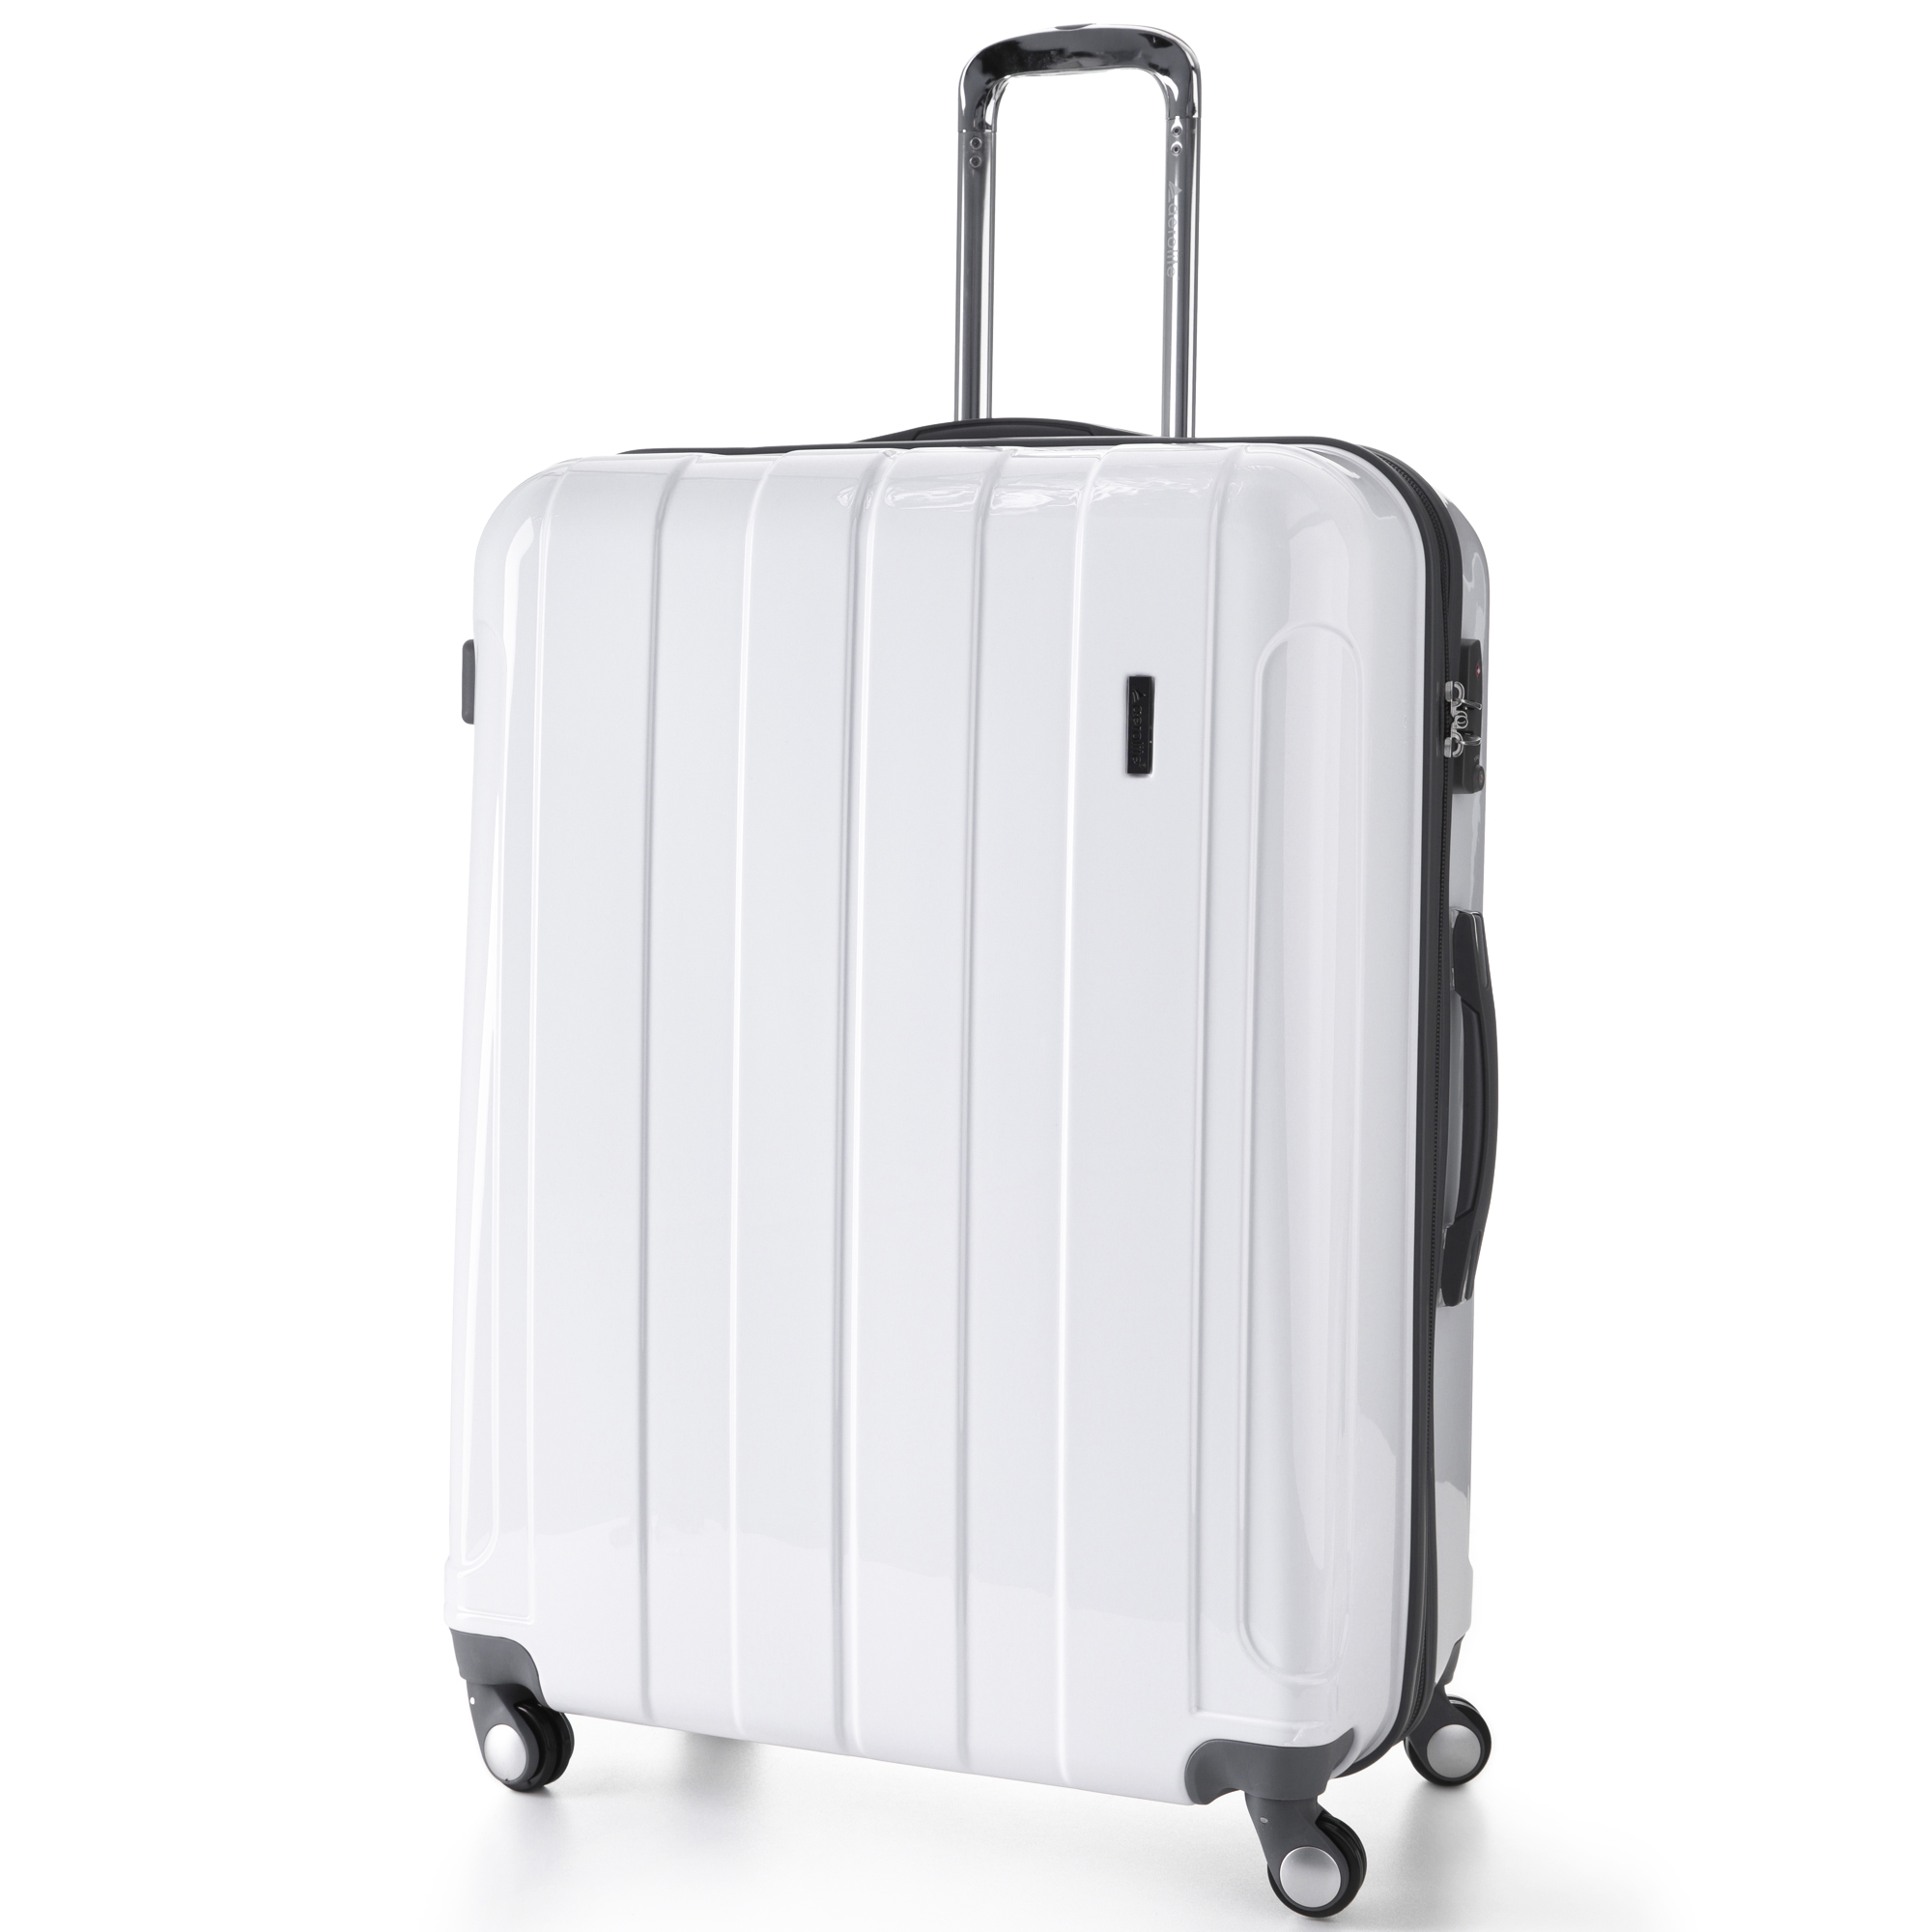 Aerolite PCF525 Hardshell Travel Luggage Suitcases 29″ (WHITE